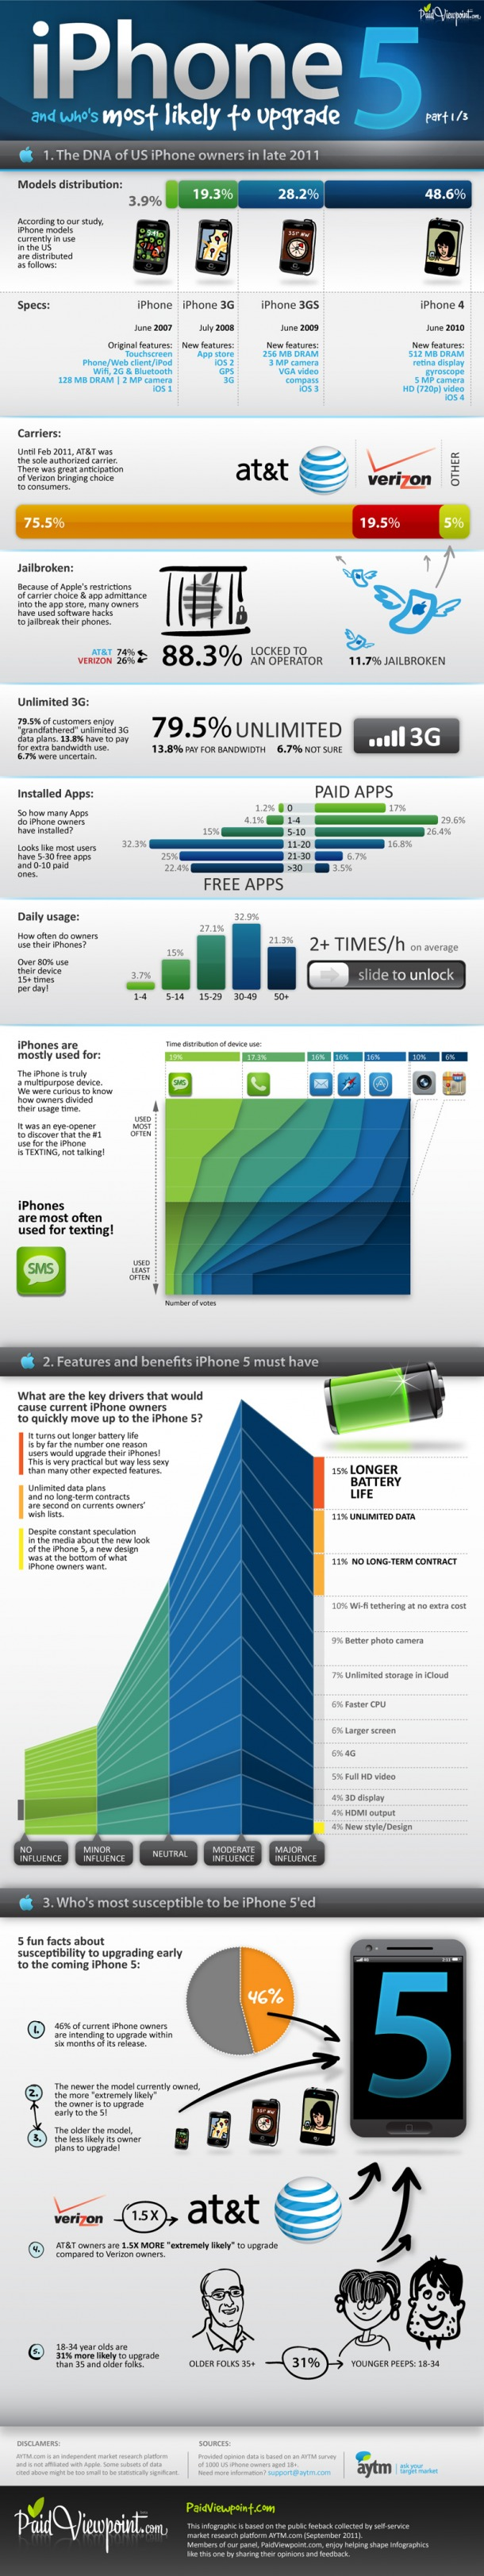 iPhone 5 and Who's Most Likely to Upgrade [infographic]